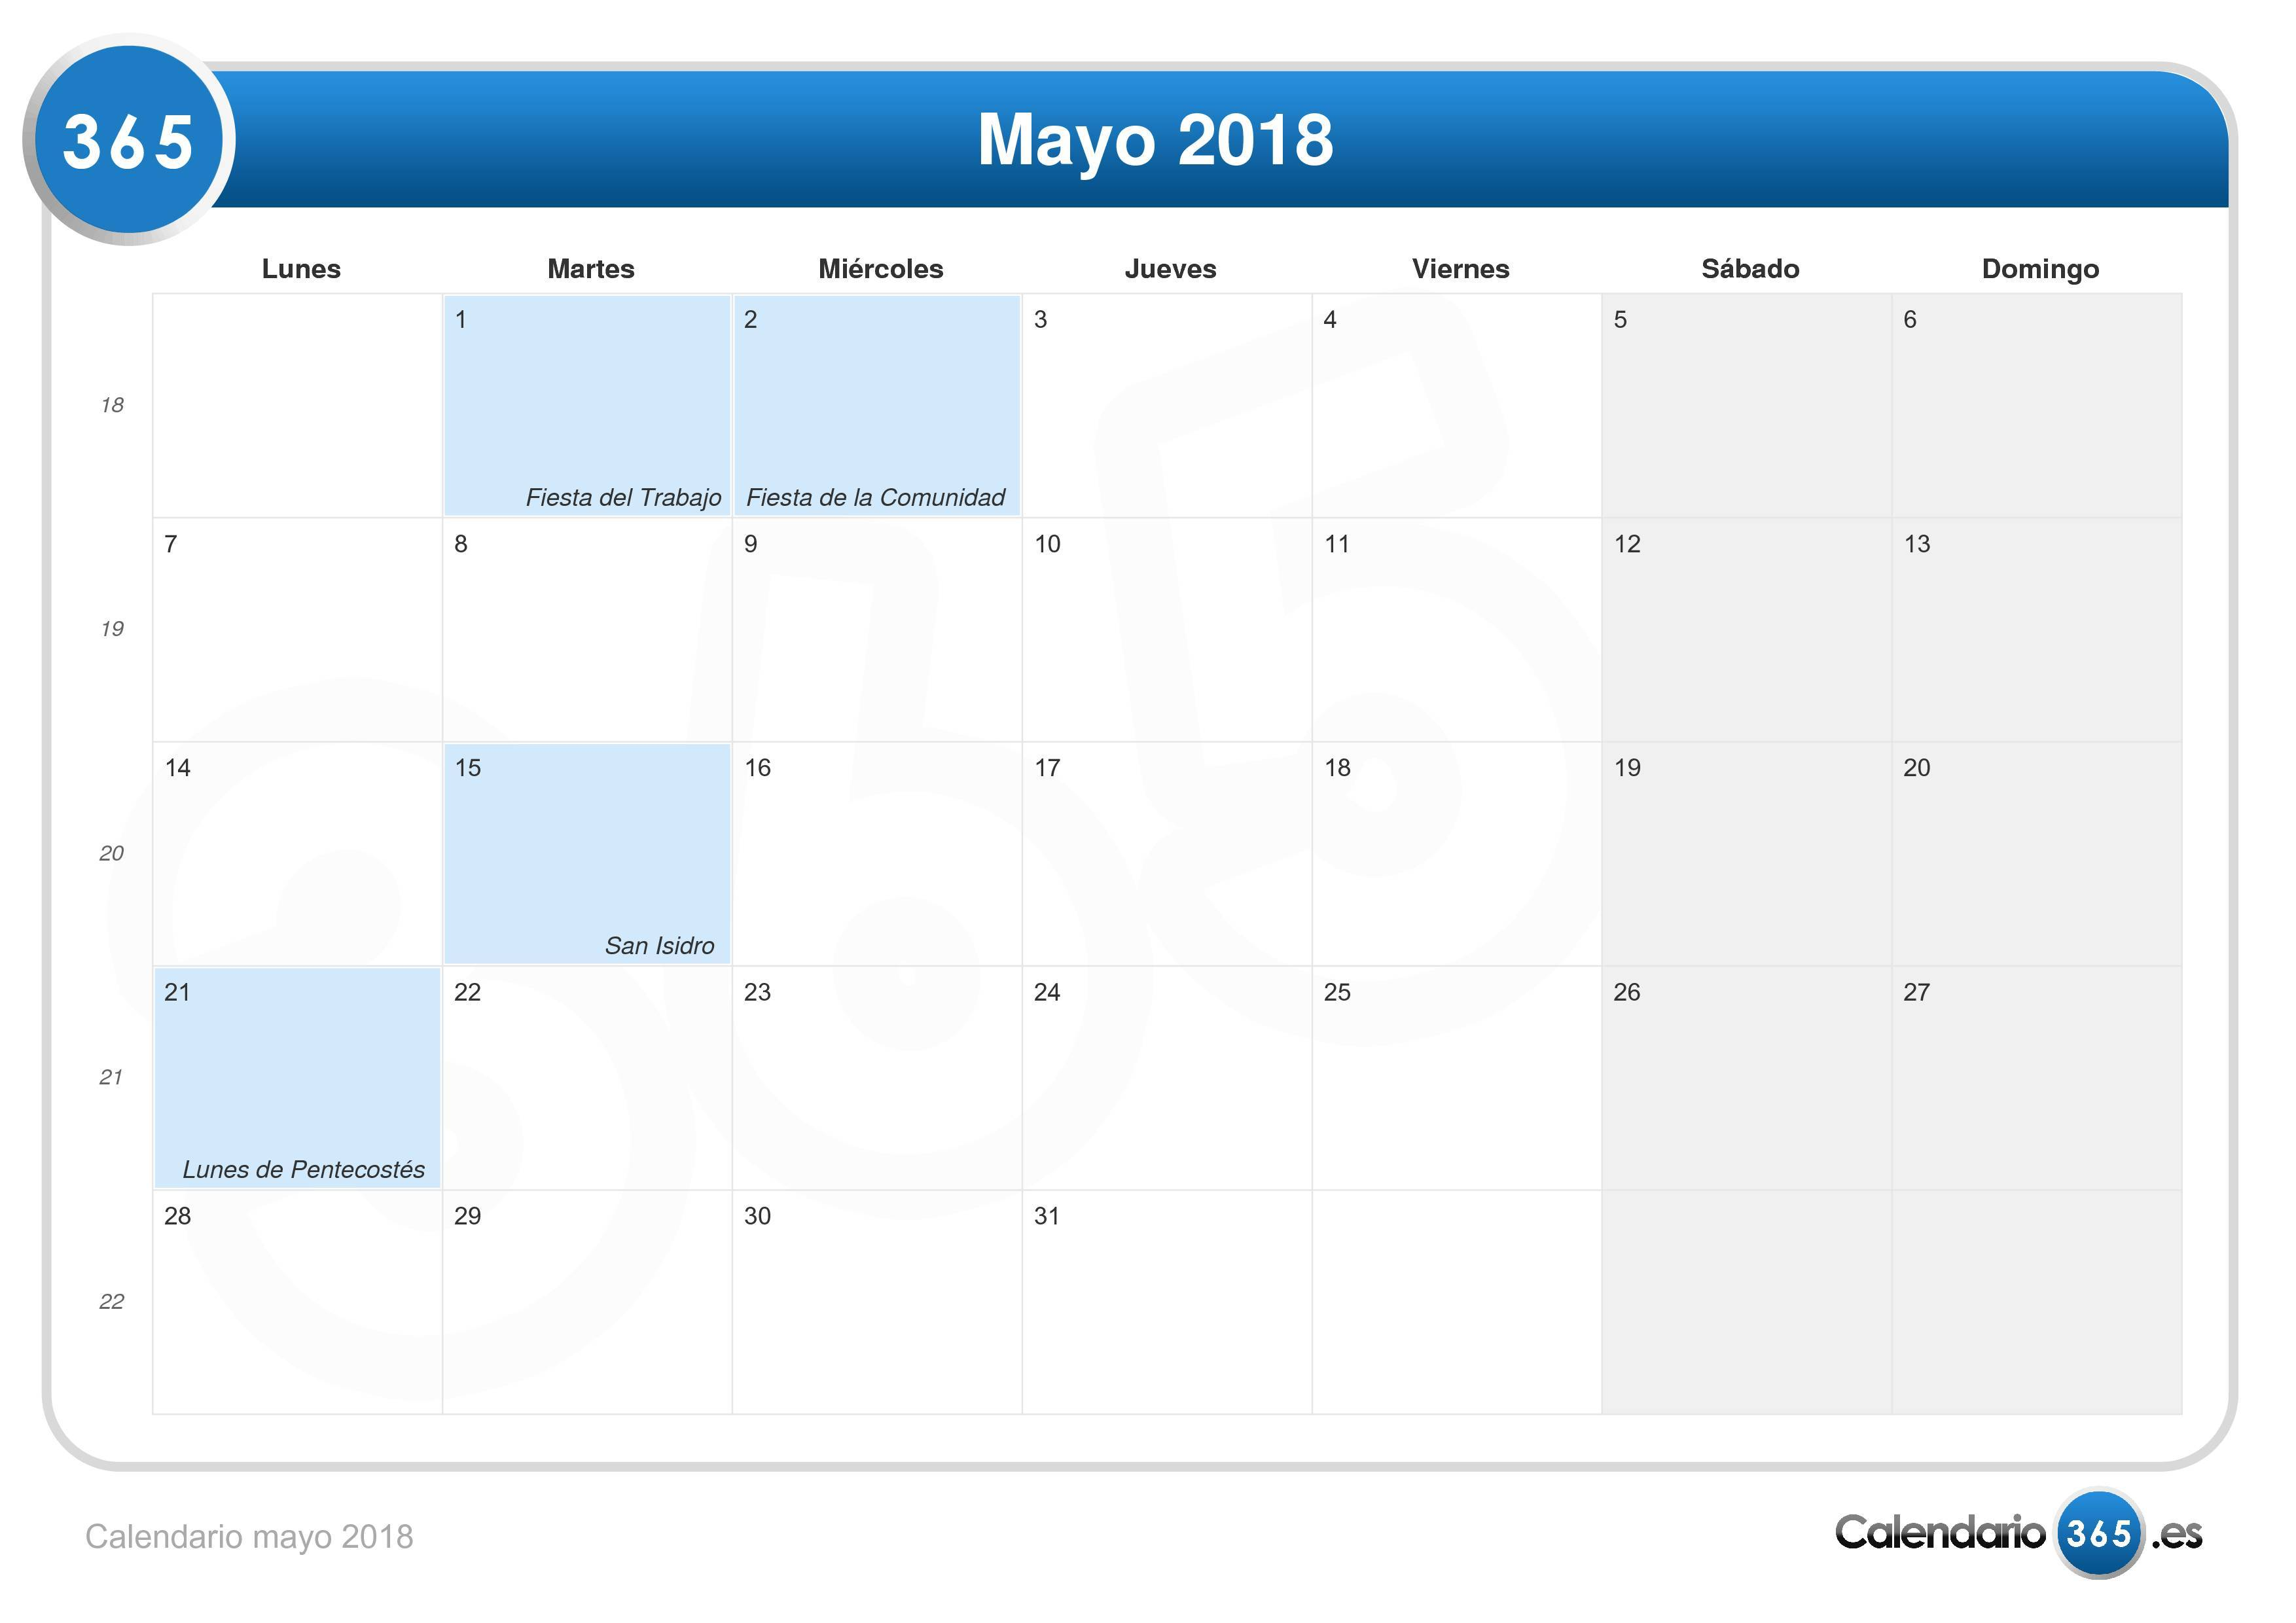 Calendario mayo 2018g thecheapjerseys Image collections